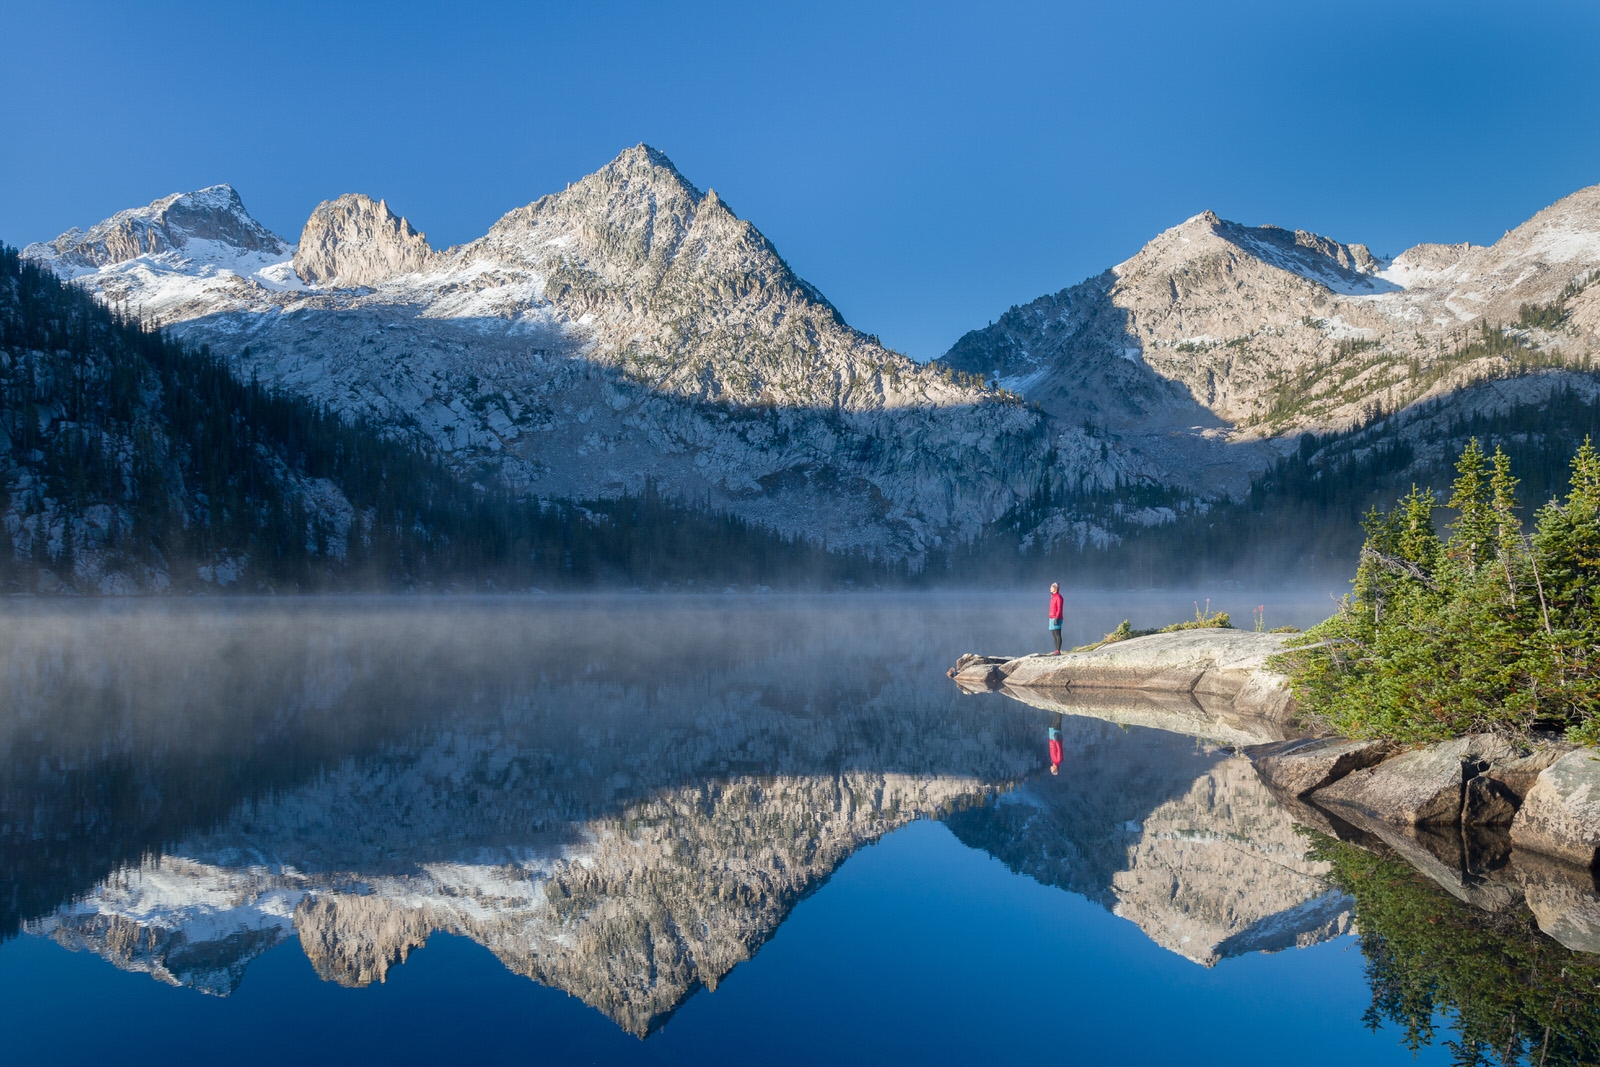 Morning Glory at Toxaway Lake in the Sawtooth Mountains